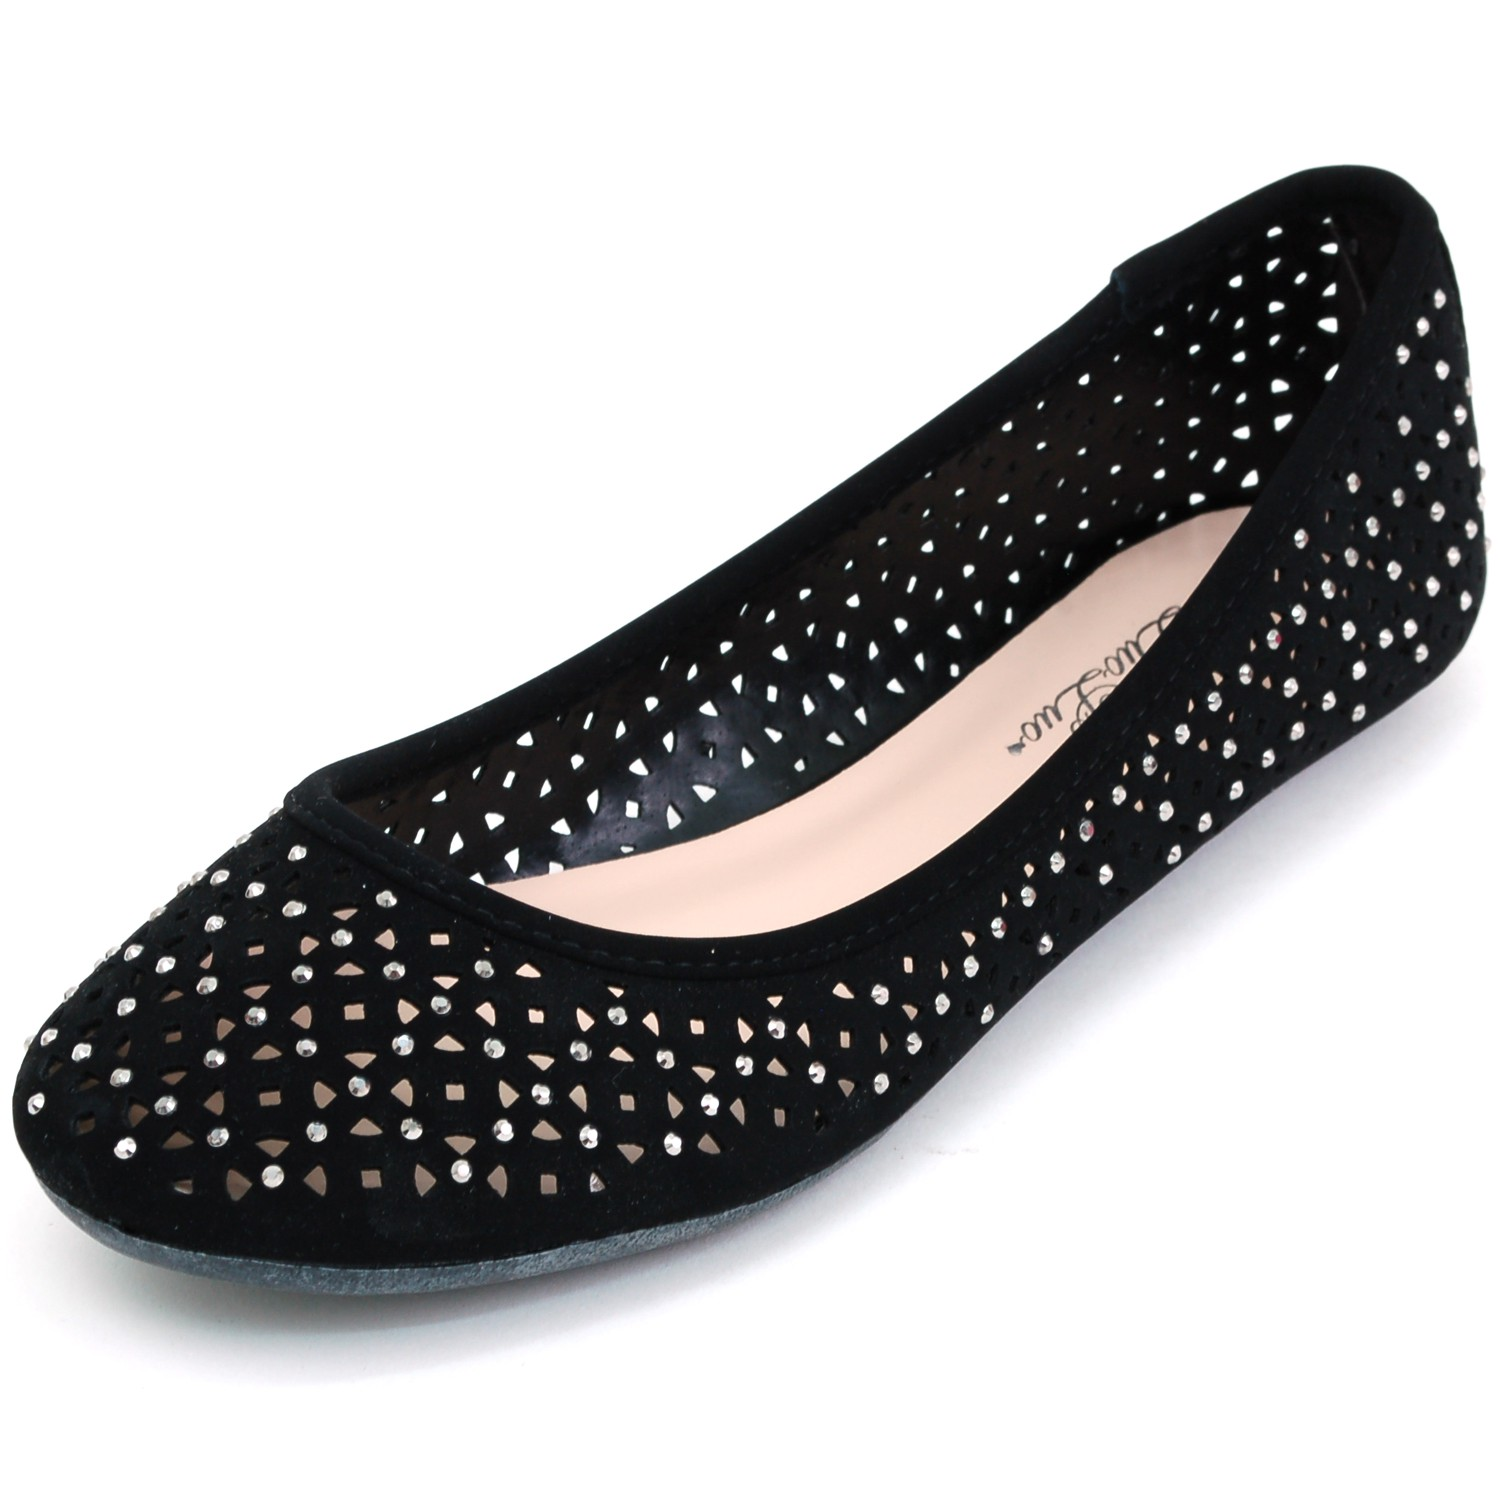 Womens Ballet Flats Perforated Rhinestone Embellished